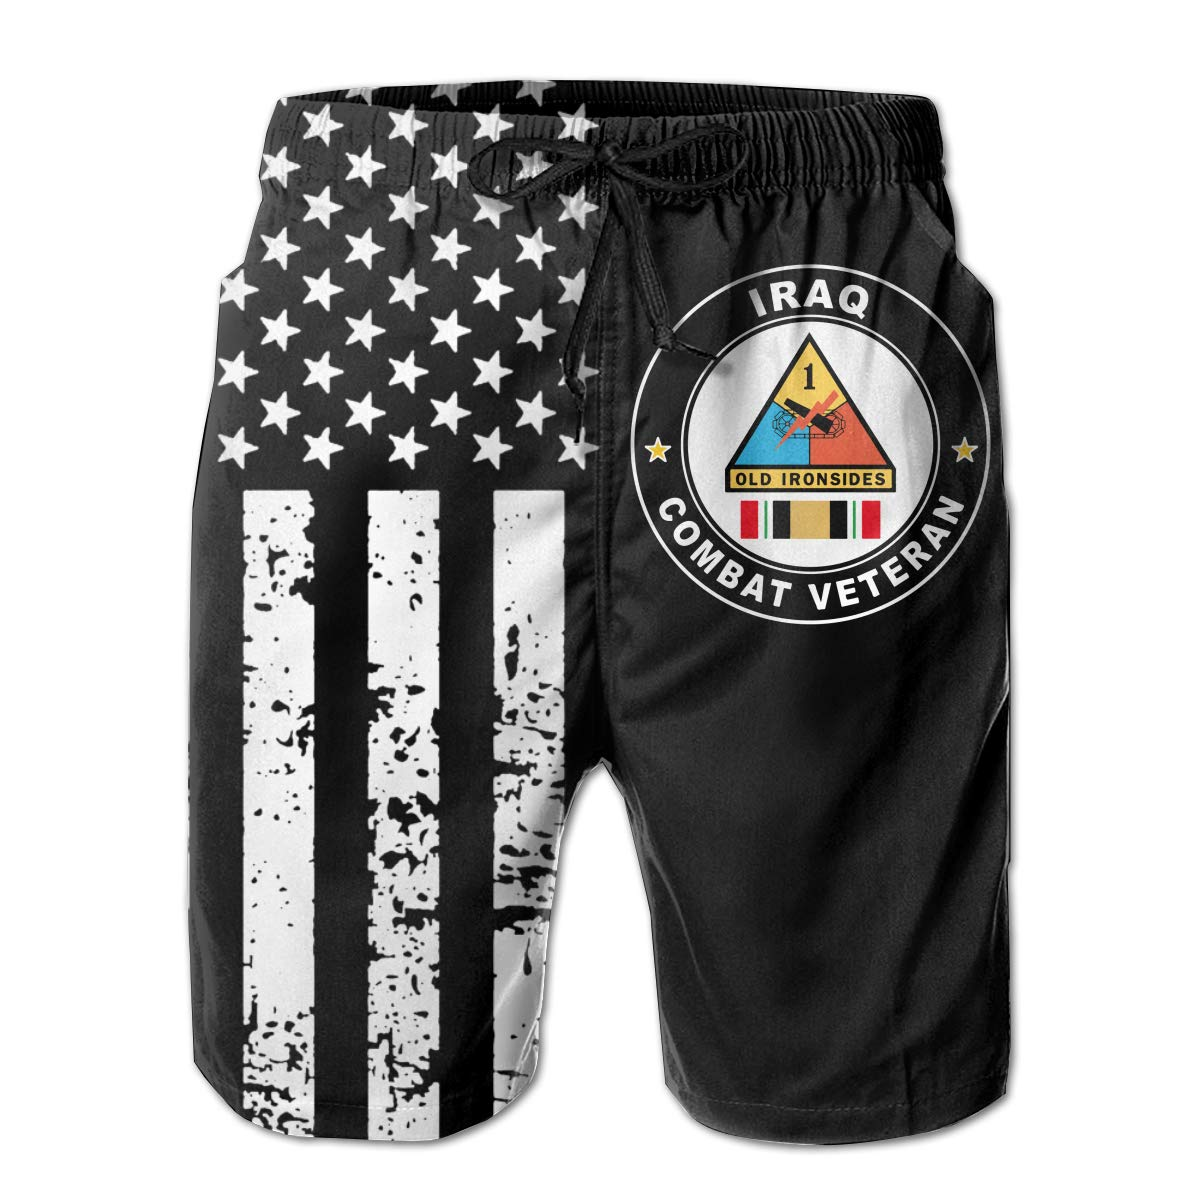 1st Armored Division Iraq Combat Veteran Mens Summer Casual Boardshort with Mesh Lining